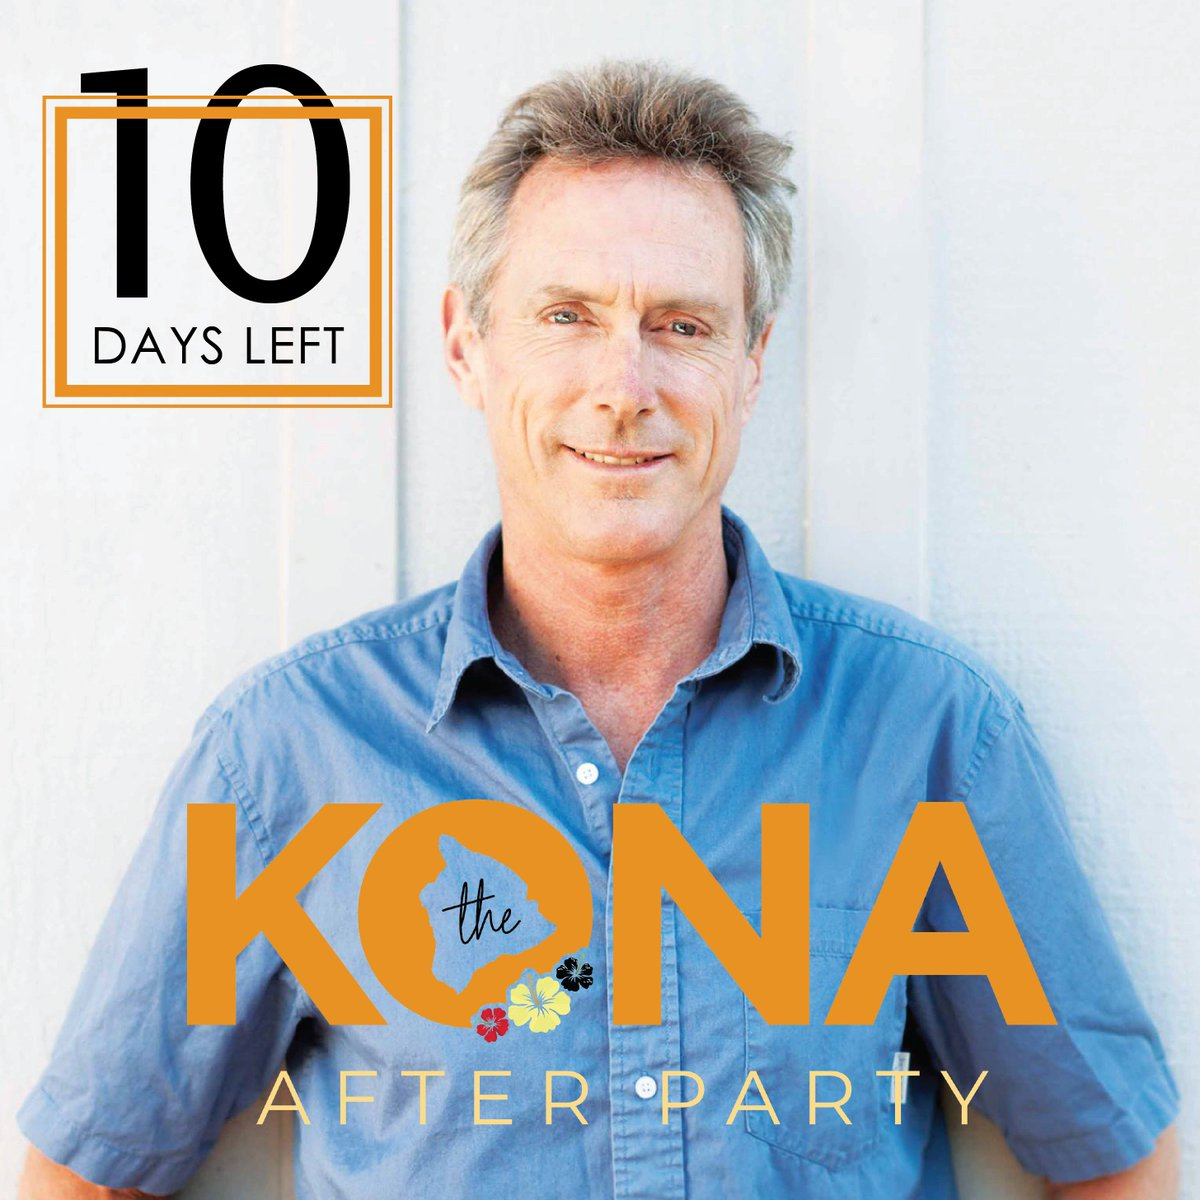 1️⃣0️⃣ days until the Kona After Party! 6X IRONMAN World Champion Mark Allen will join us on the red carpet ahead of IRONMAN Arizona to relive this years World Championship! 🎟: ironmanfoundation.org/KonaAfterParty